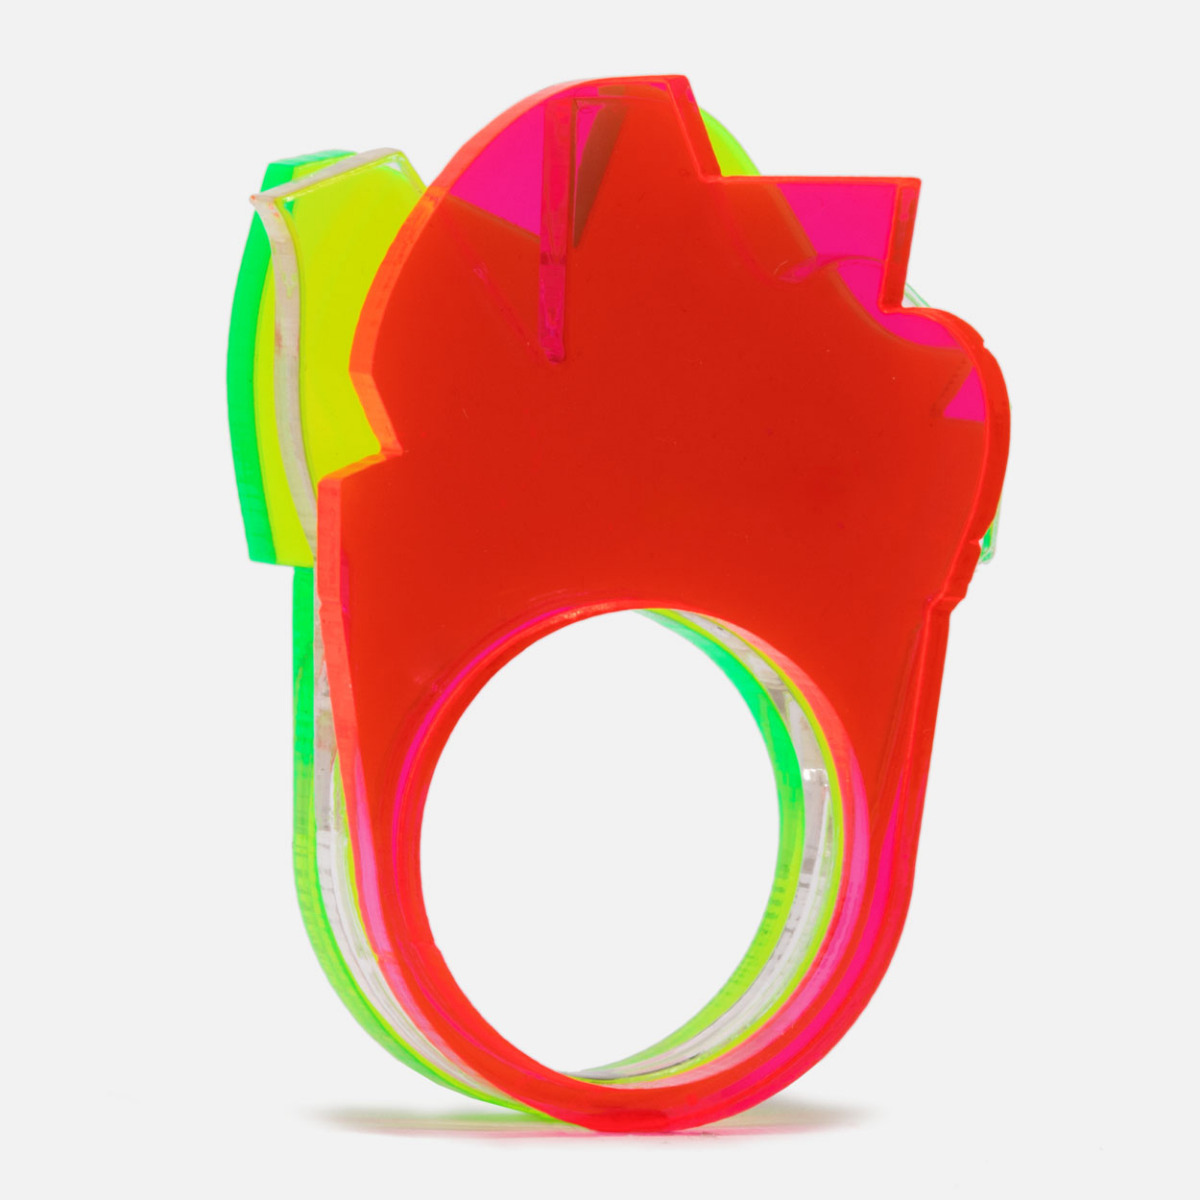 Guggenheim Bilbao Multicolor Ring